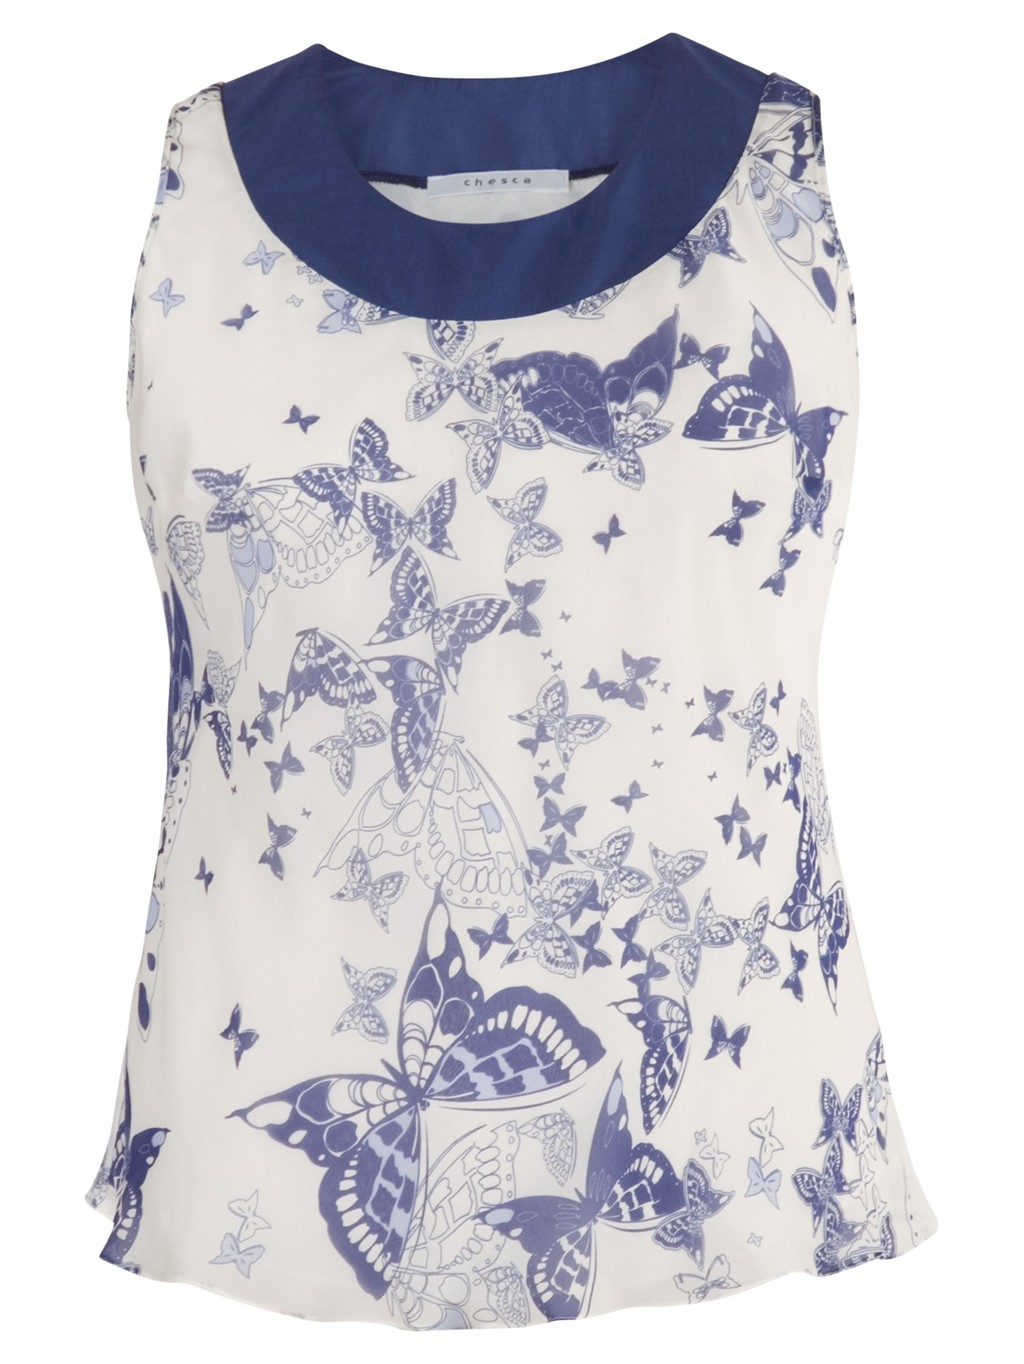 Butterfly Print Silk Camisole, Ivory/Blue - neckline: round neck; sleeve style: sleeveless; predominant colour: ivory/cream; secondary colour: royal blue; length: standard; style: top; fibres: silk - 100%; occasions: occasion; fit: body skimming; sleeve length: sleeveless; texture group: silky - light; pattern type: fabric; pattern: patterned/print; season: s/s 2014; multicoloured: multicoloured; wardrobe: event